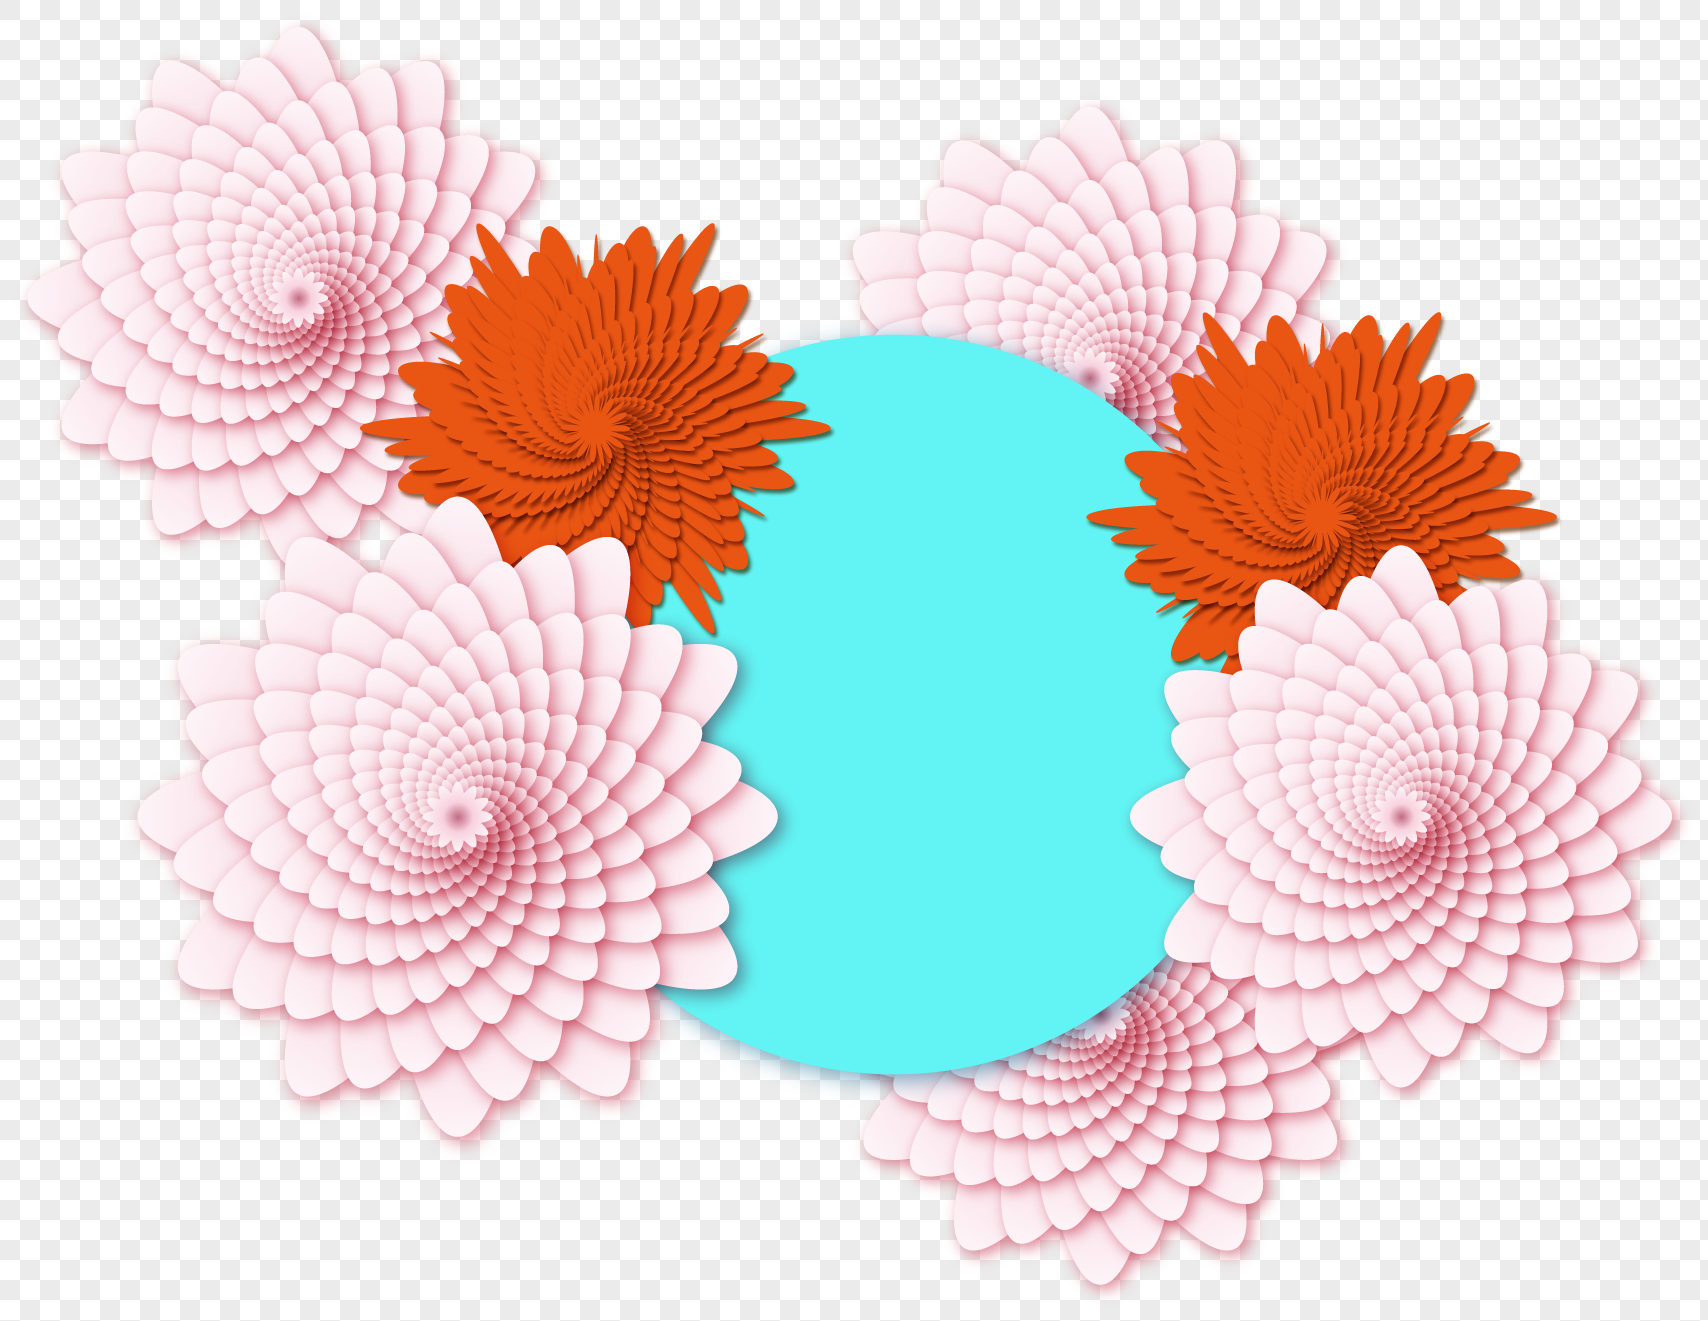 Png Paper Cutting Flower Design Pictures Picturesboss